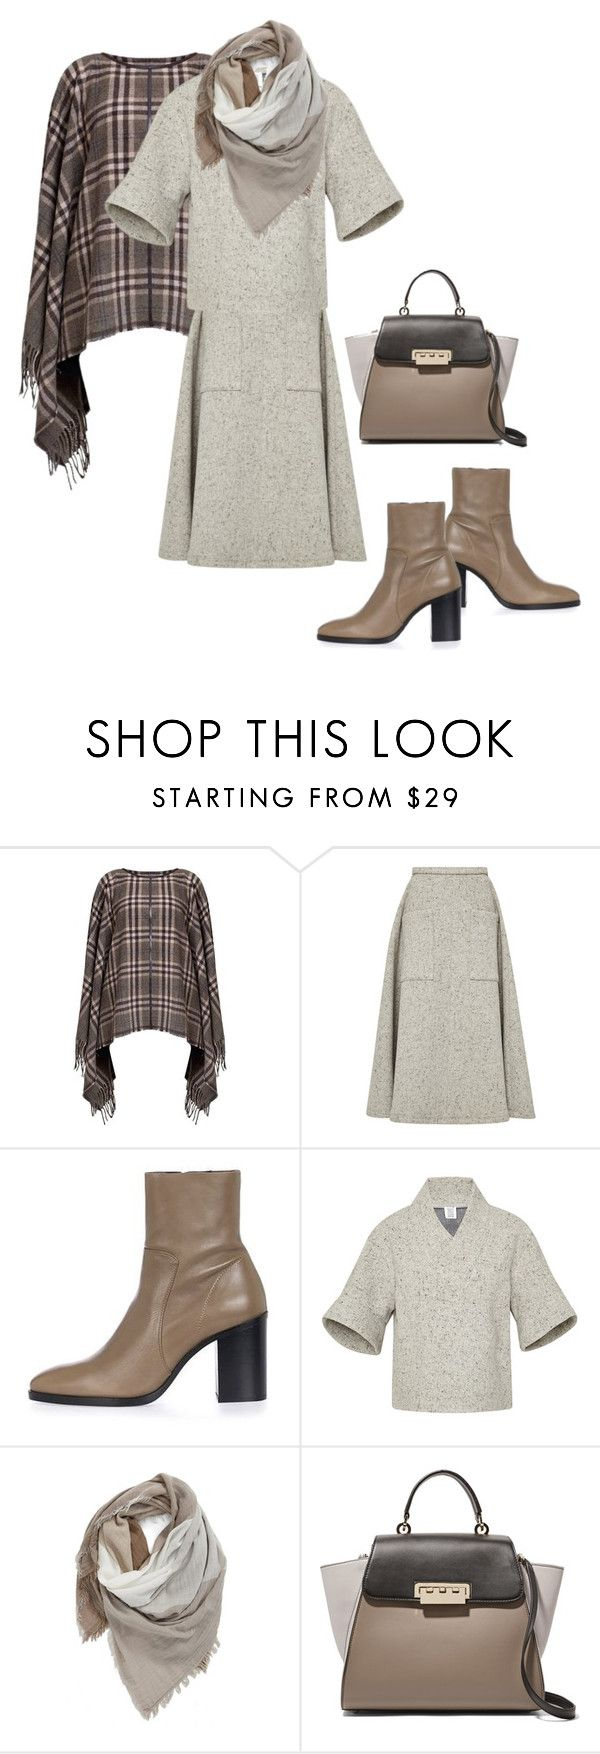 """""""Crisp Fall Day🍂"""" by dolenka ❤ liked on Polyvore featuring Rumour London, Rosie Assoulin, Topshop, BP. and ZAC Zac Posen"""